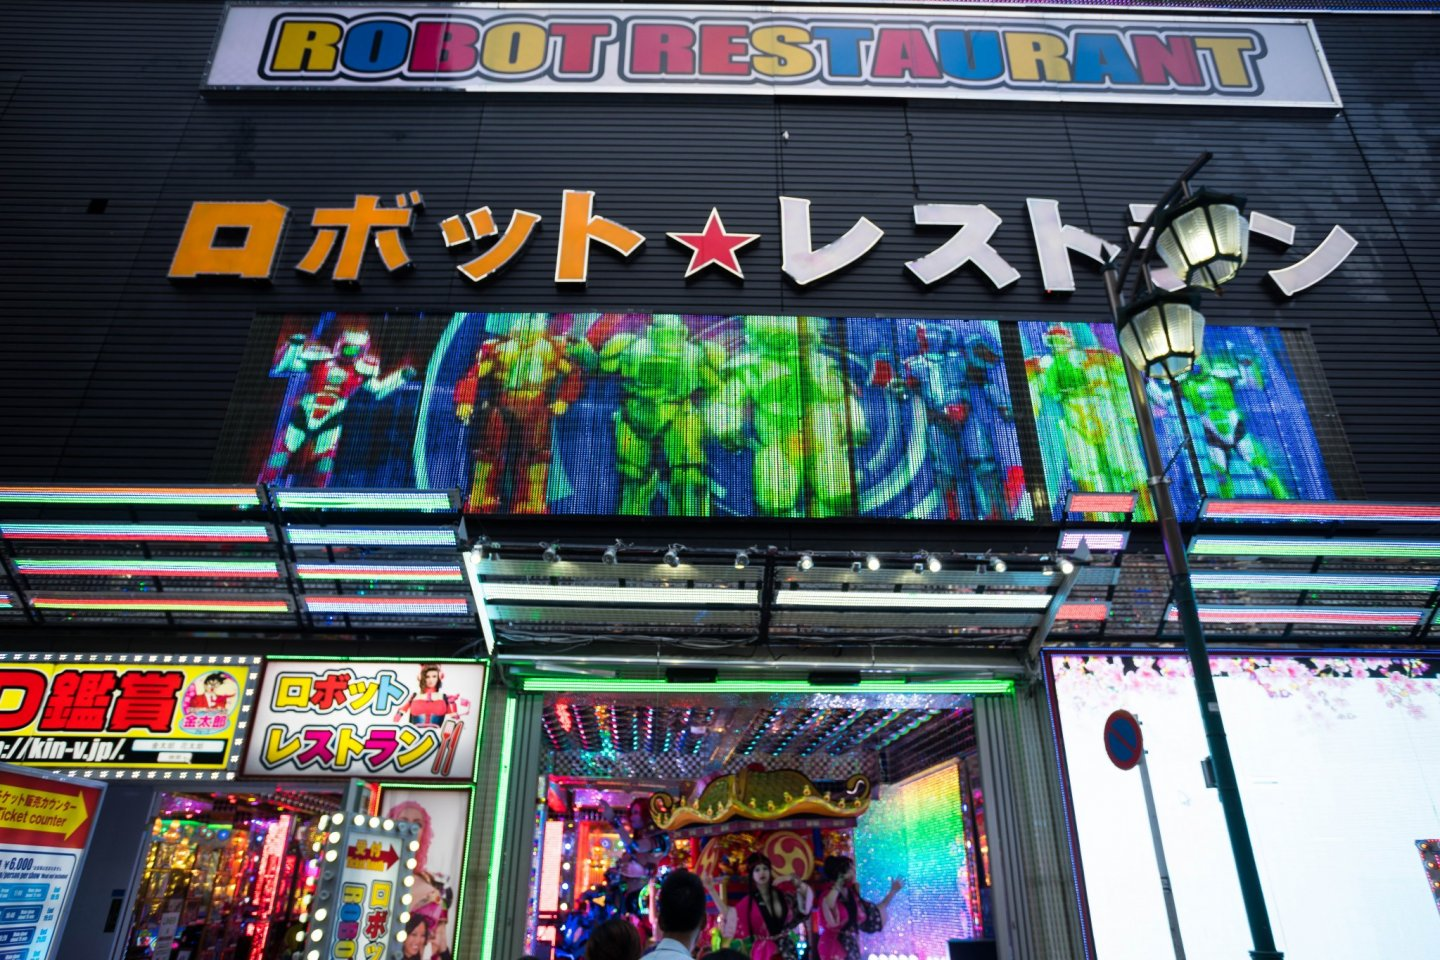 Entrance to the Robot Restaurant